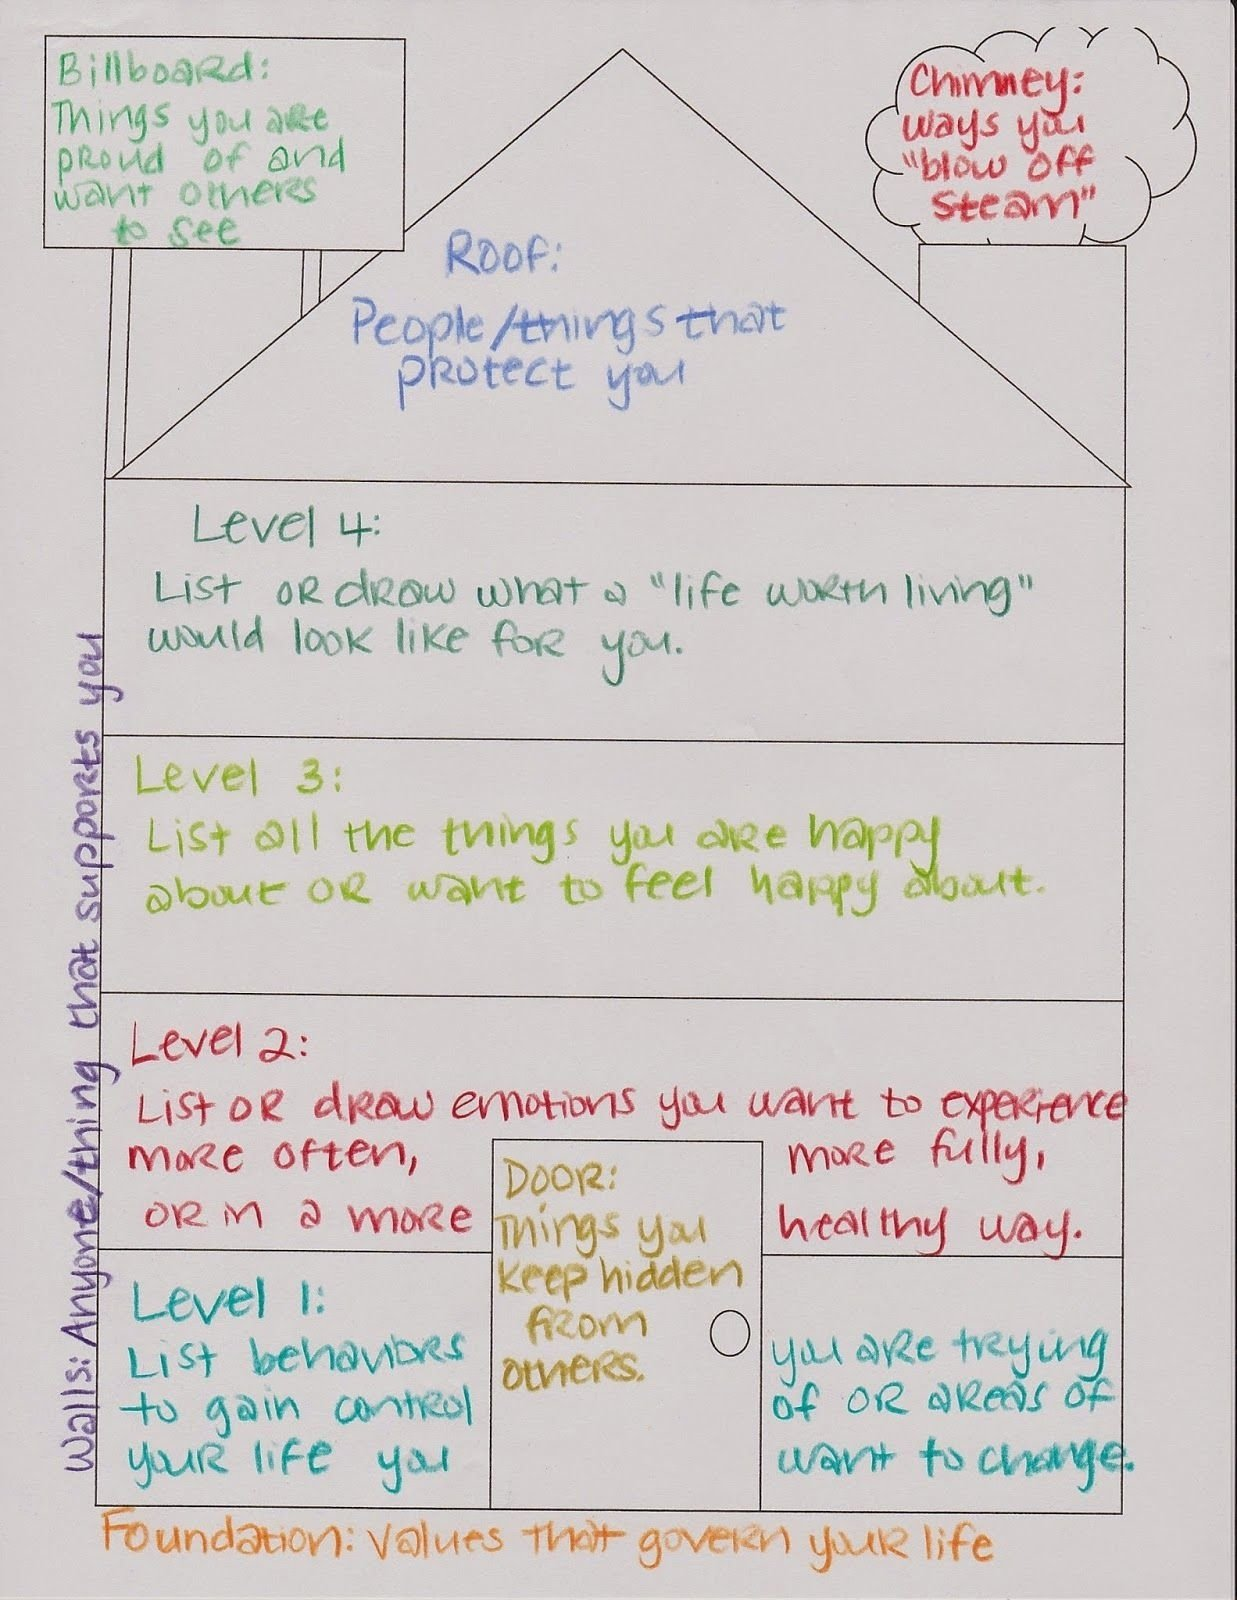 10 Unique Group Ideas For Mental Health therapeutic interventions for children dbt house mental health 1 2021